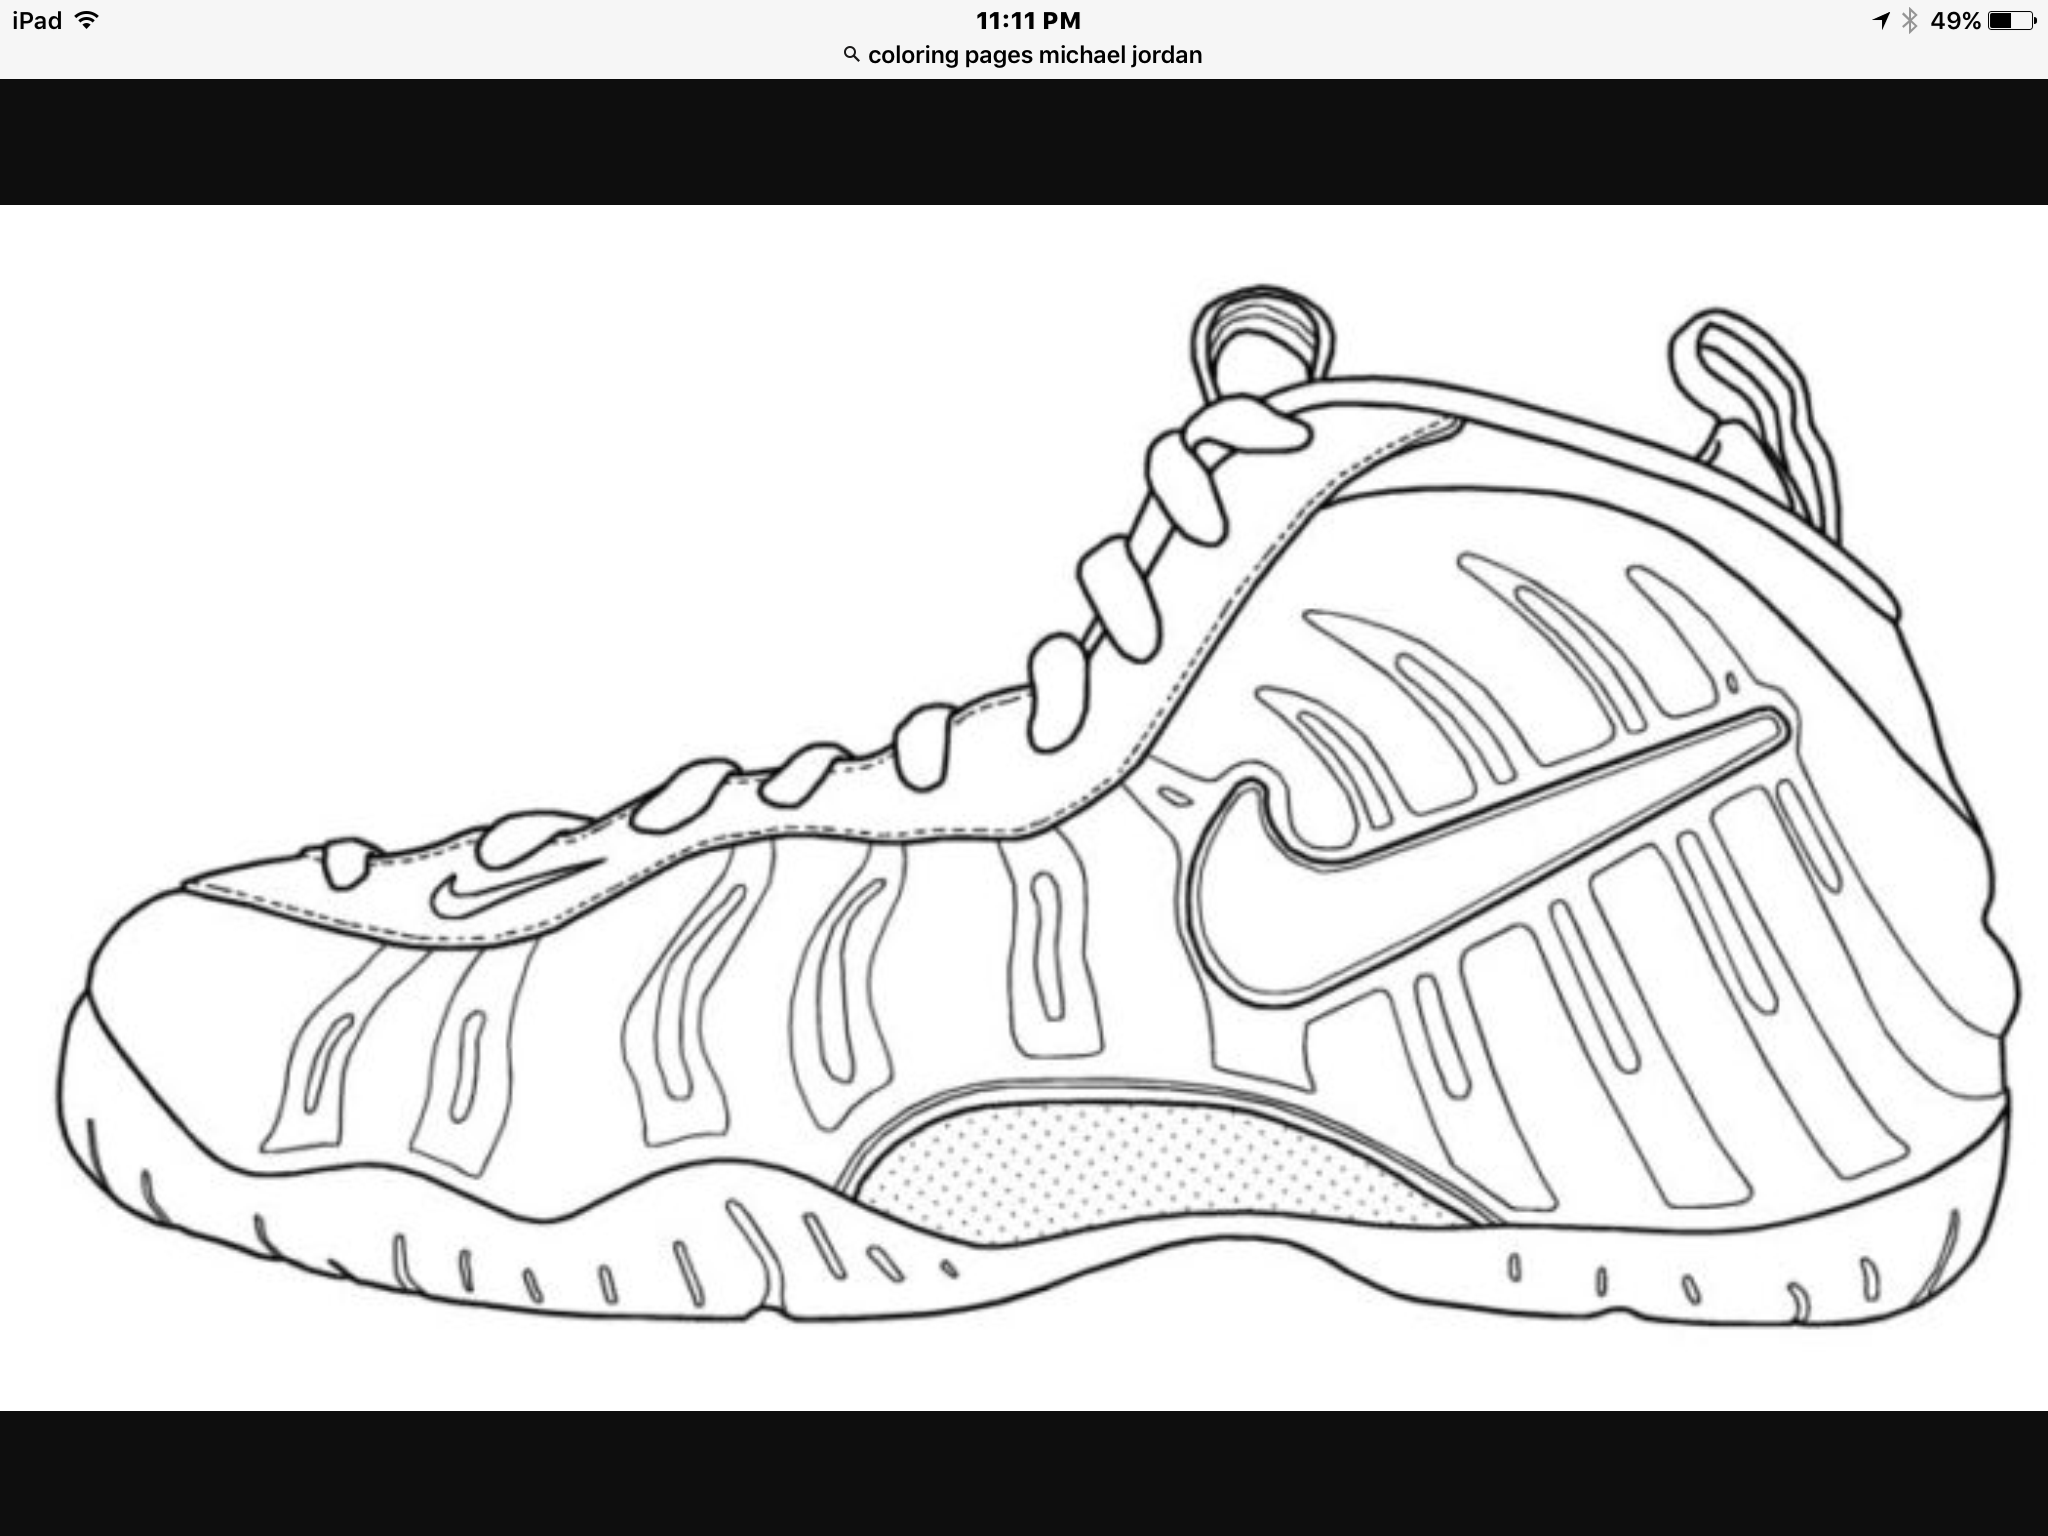 kd coloring pages kd shoes coloring pages at getcoloringscom free kd pages coloring